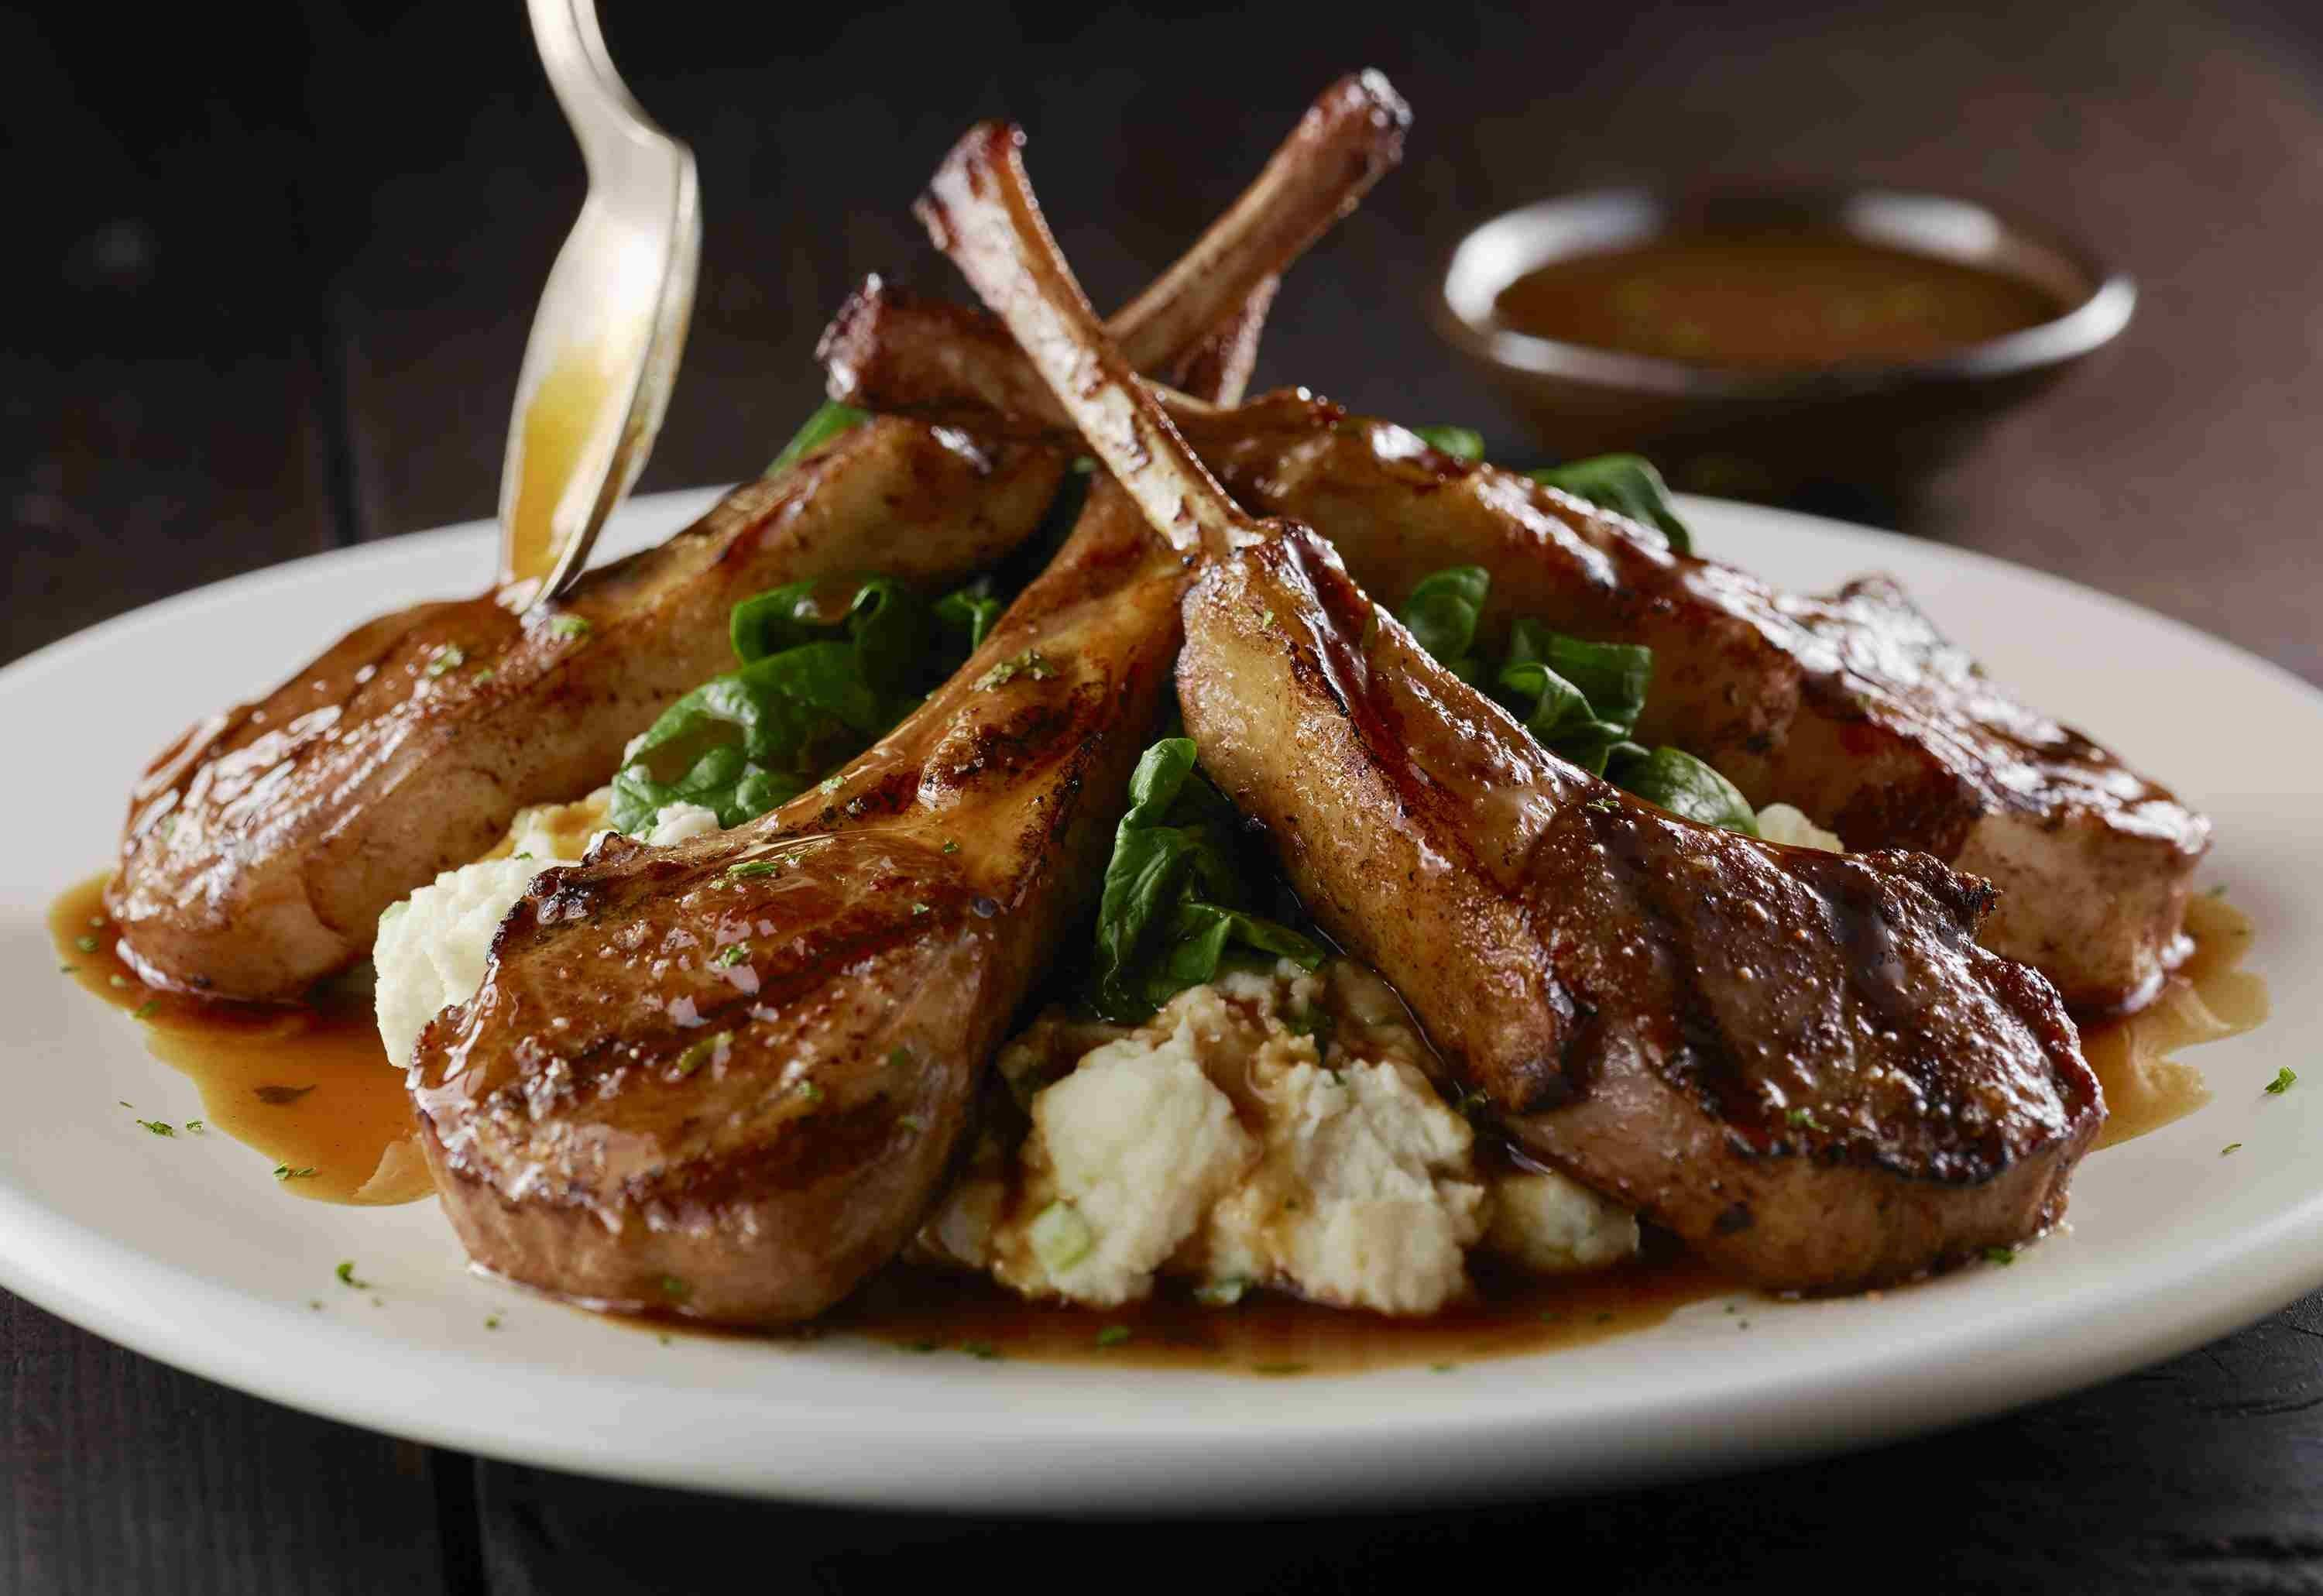 LongHorn Steakhouse recently added these bone-in lamb chops to the chef's showcase menu. It comes served with horseradish-whipped mashed potatoes and wilted spinach for $19.99.